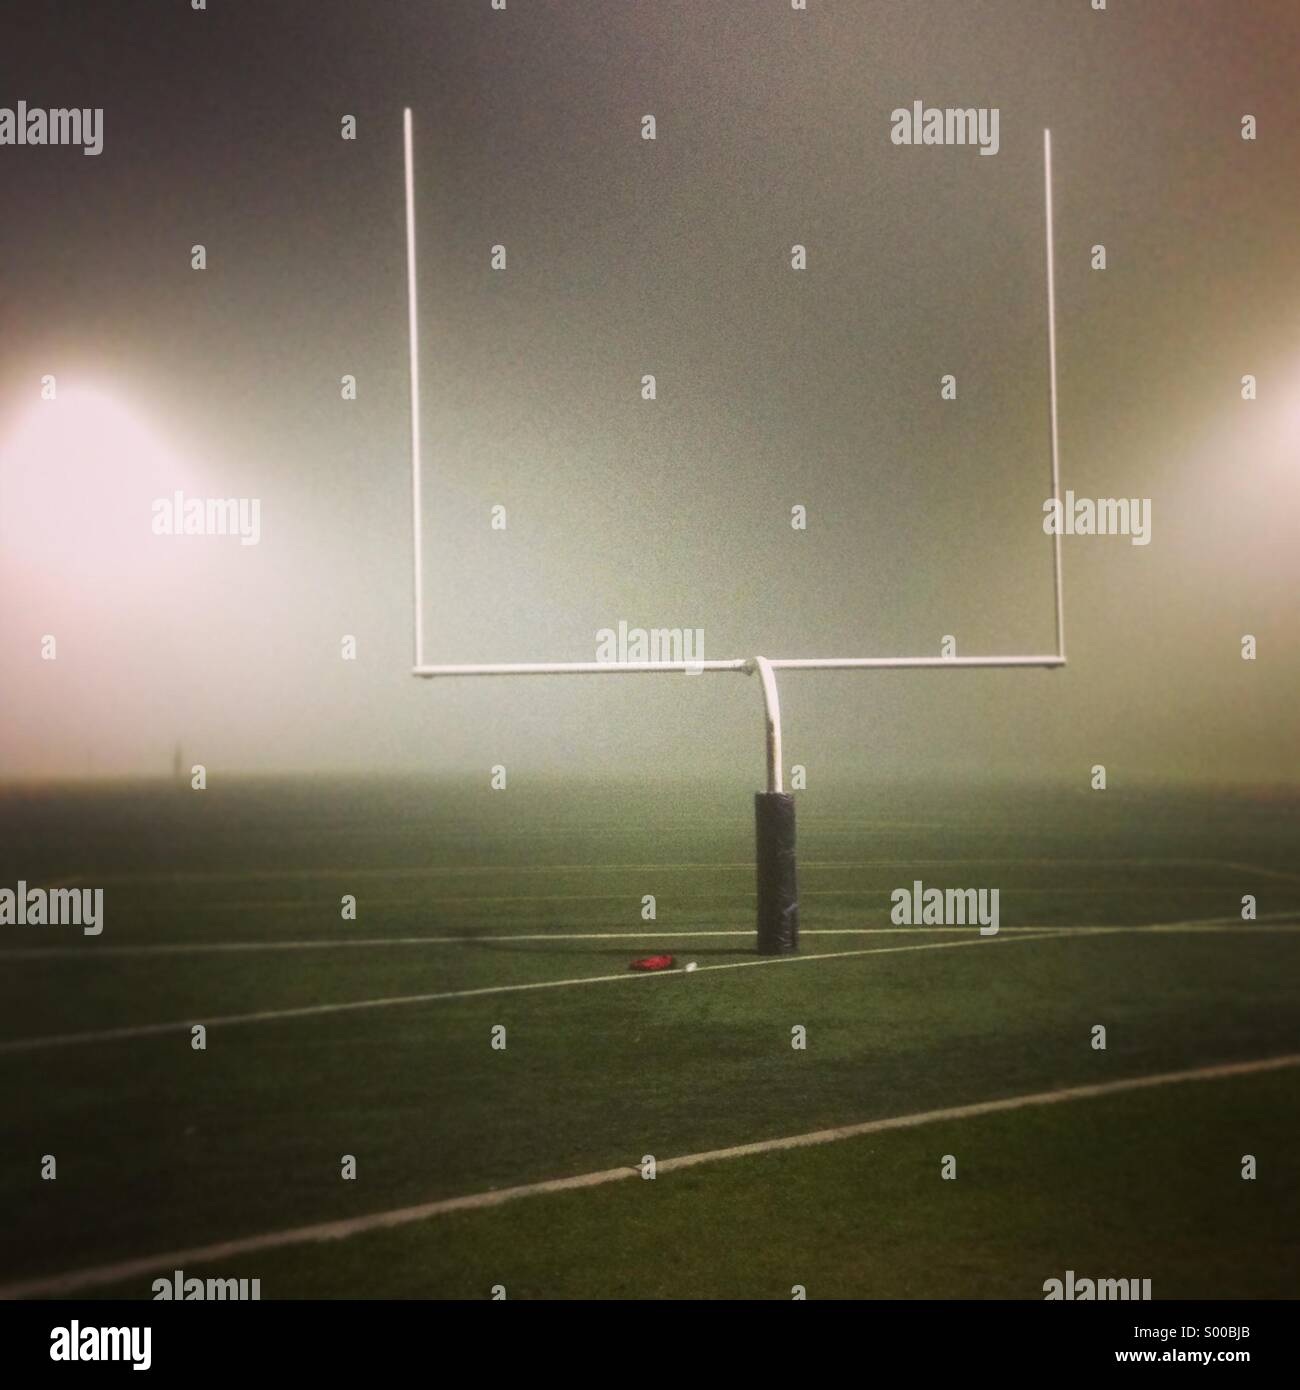 Football field and goal post enveloped in fog at night - Stock Image